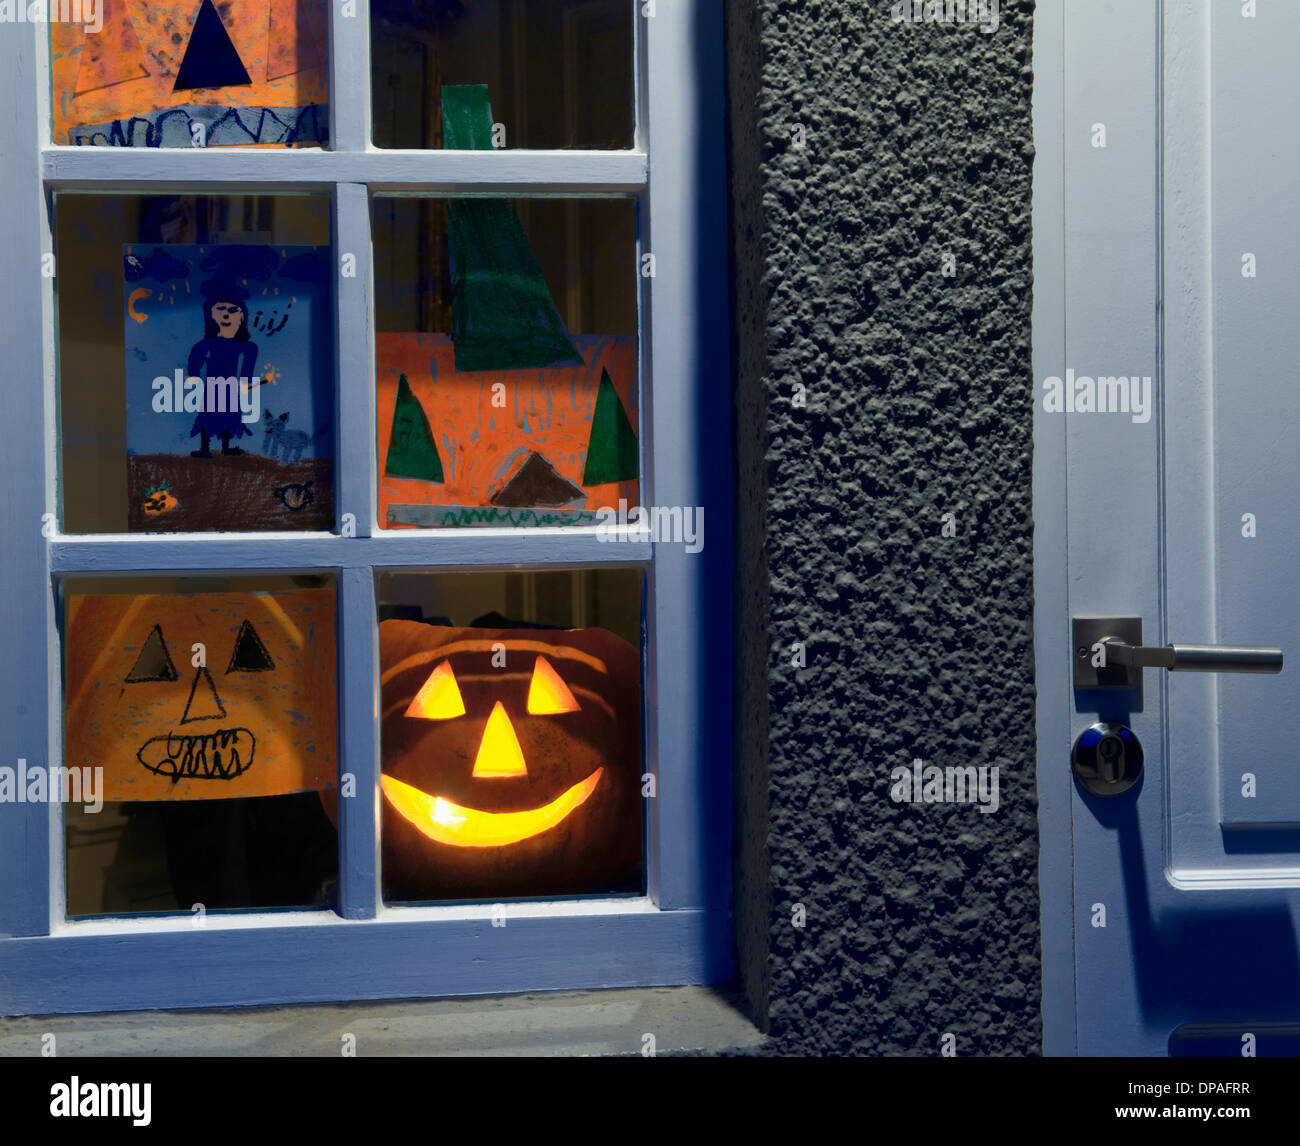 Finestra di casa con display di halloween Immagini Stock